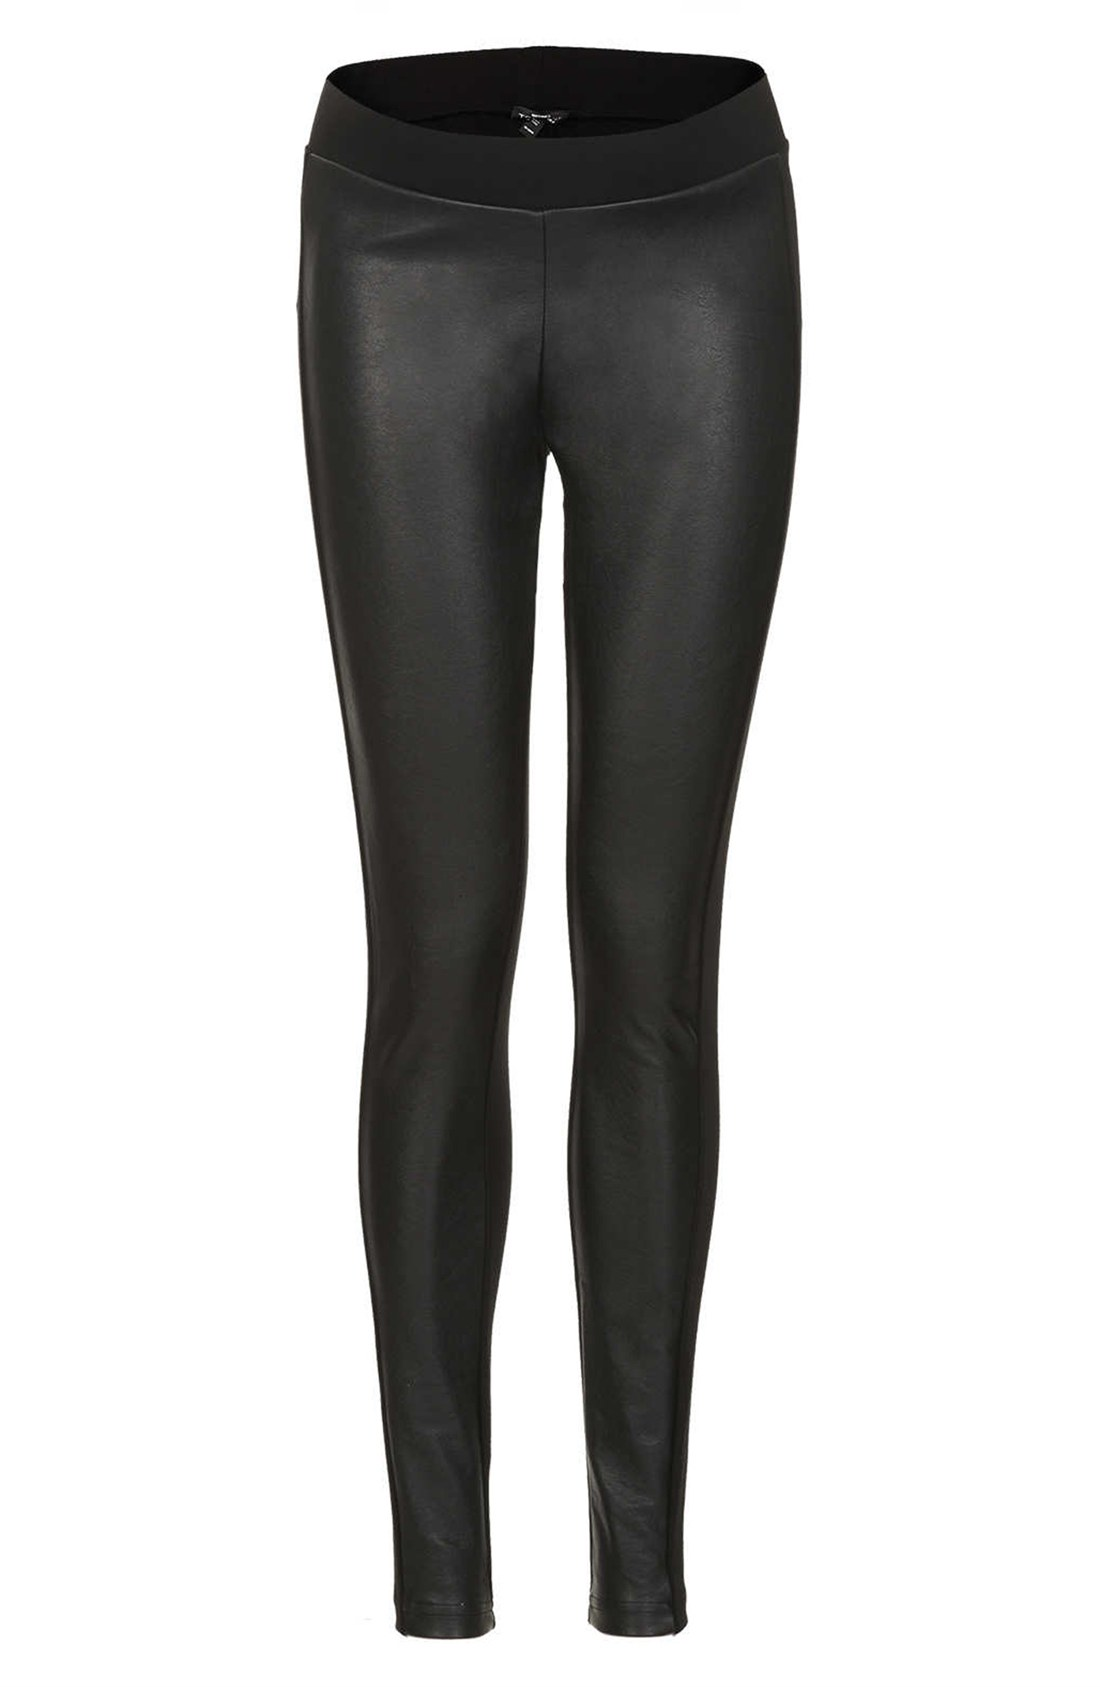 Topshop Faux Leather Panel Maternity Leggings in Black